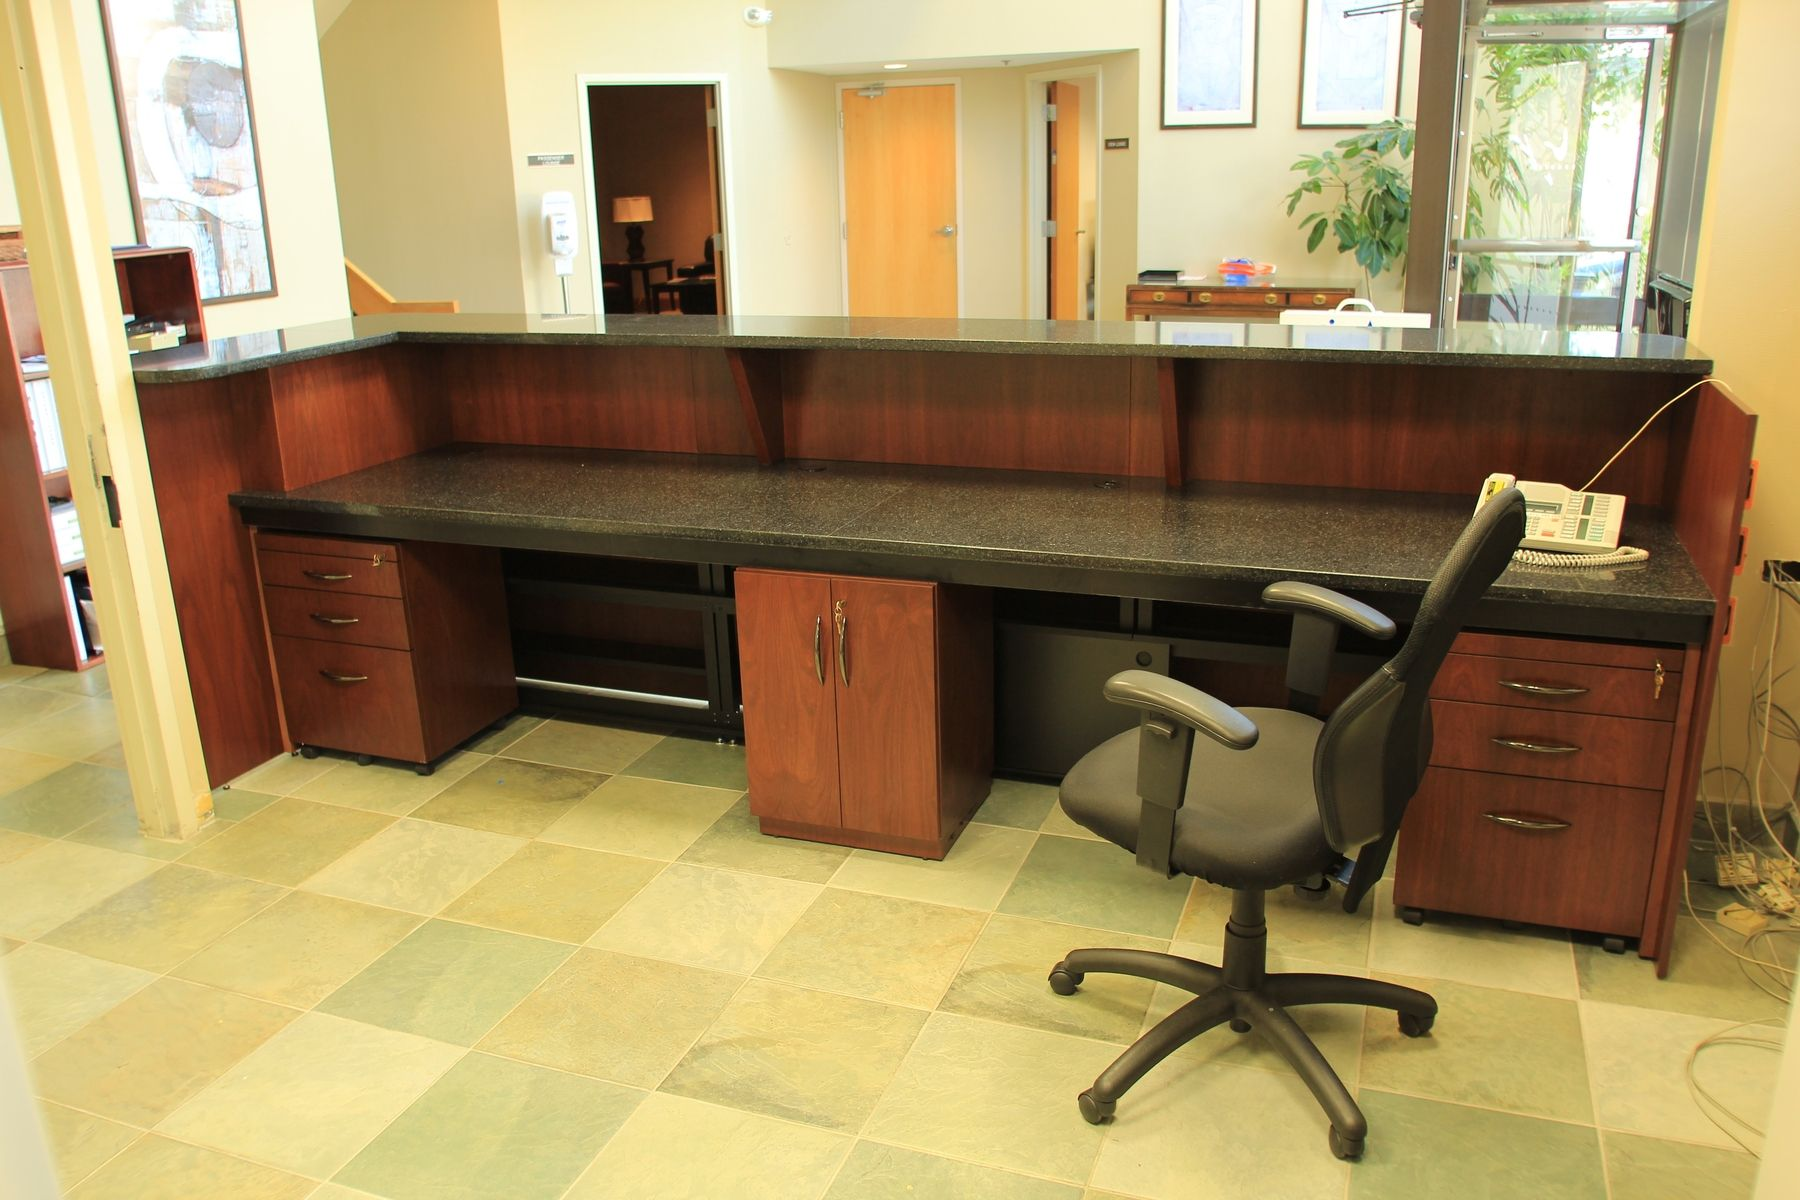 Handmade custom made zodiac and walnut reception desk by r j hoppe inc - Custom office desk ...